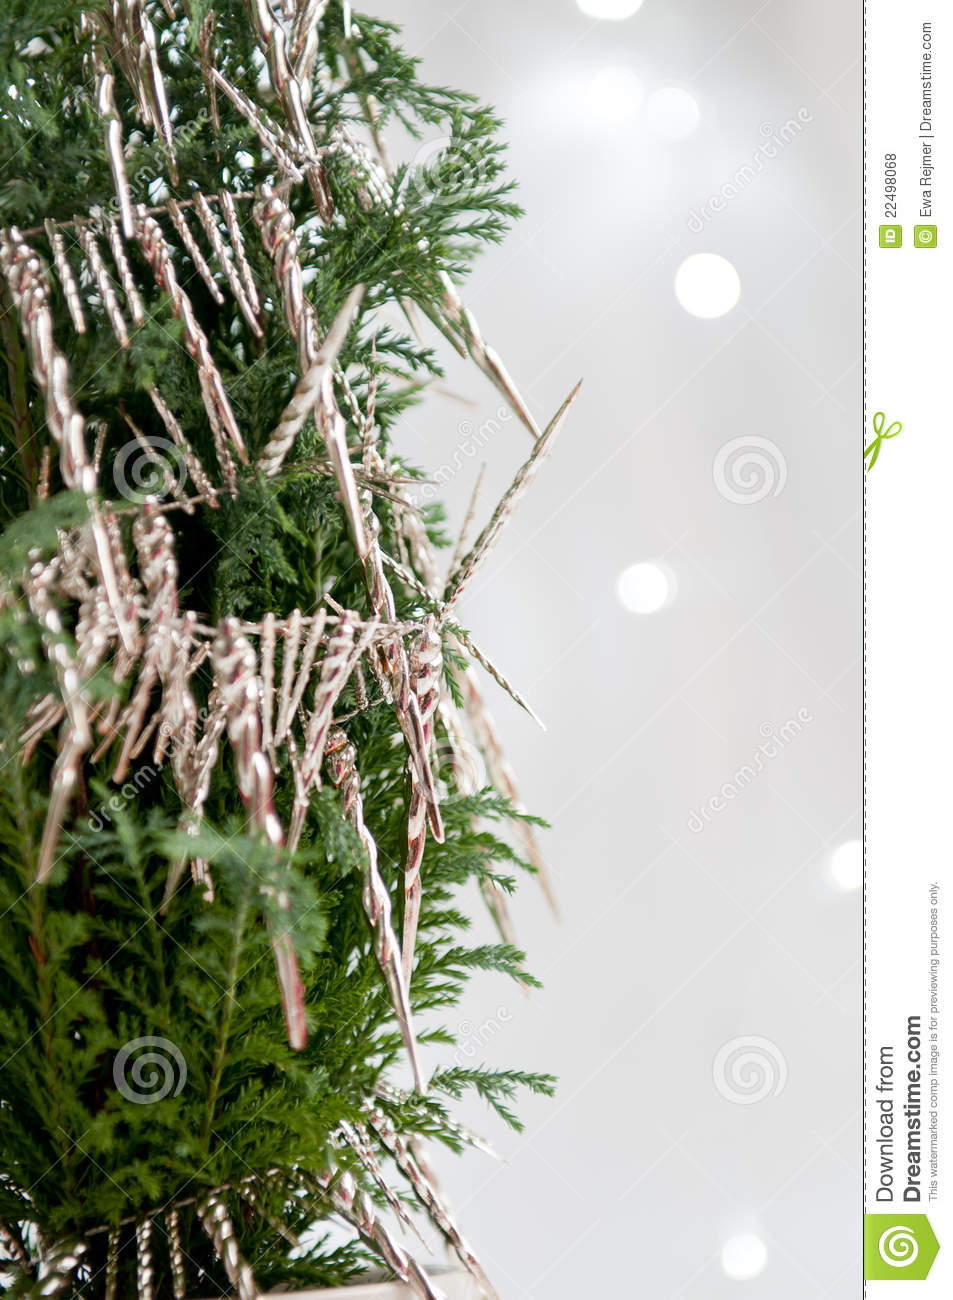 Icicle For Christmas Trees.Christmas Tree With Silver Icicles Stock Photo Image Of